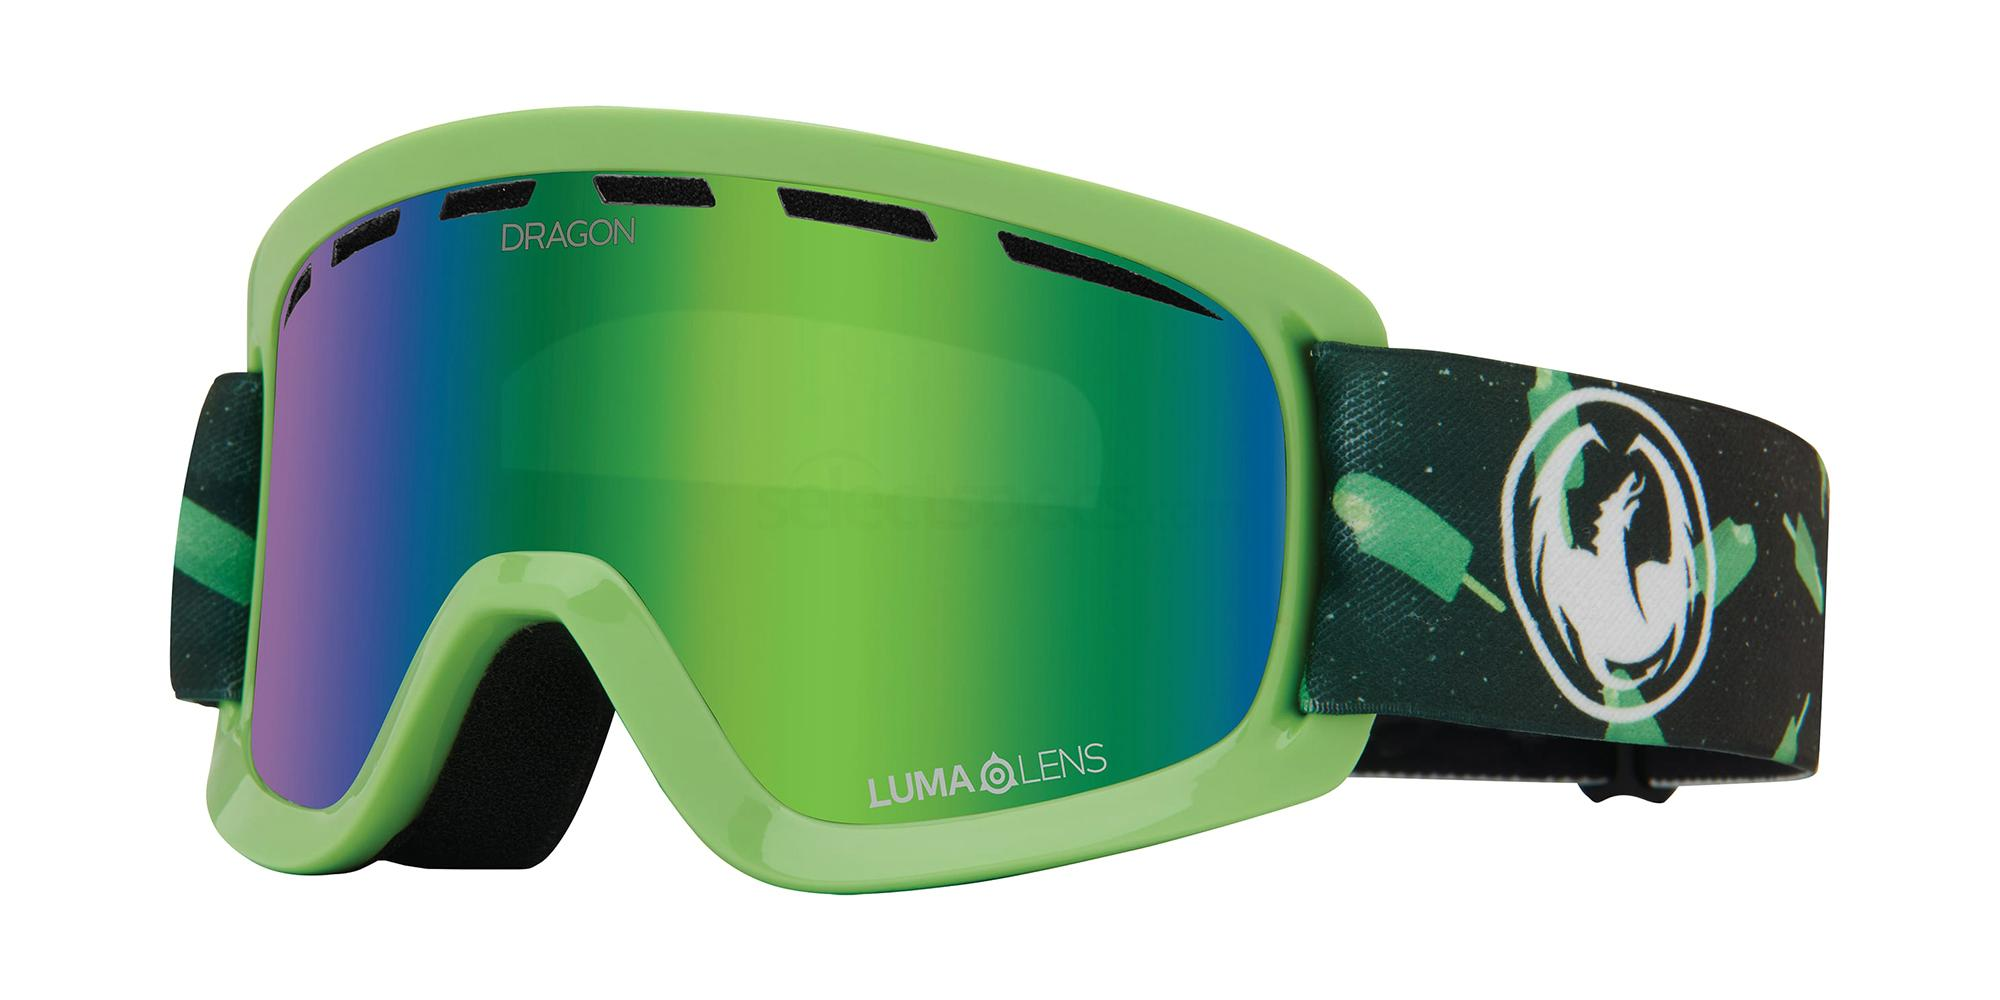 306 DR LIL D BASE ION Goggles, Dragon